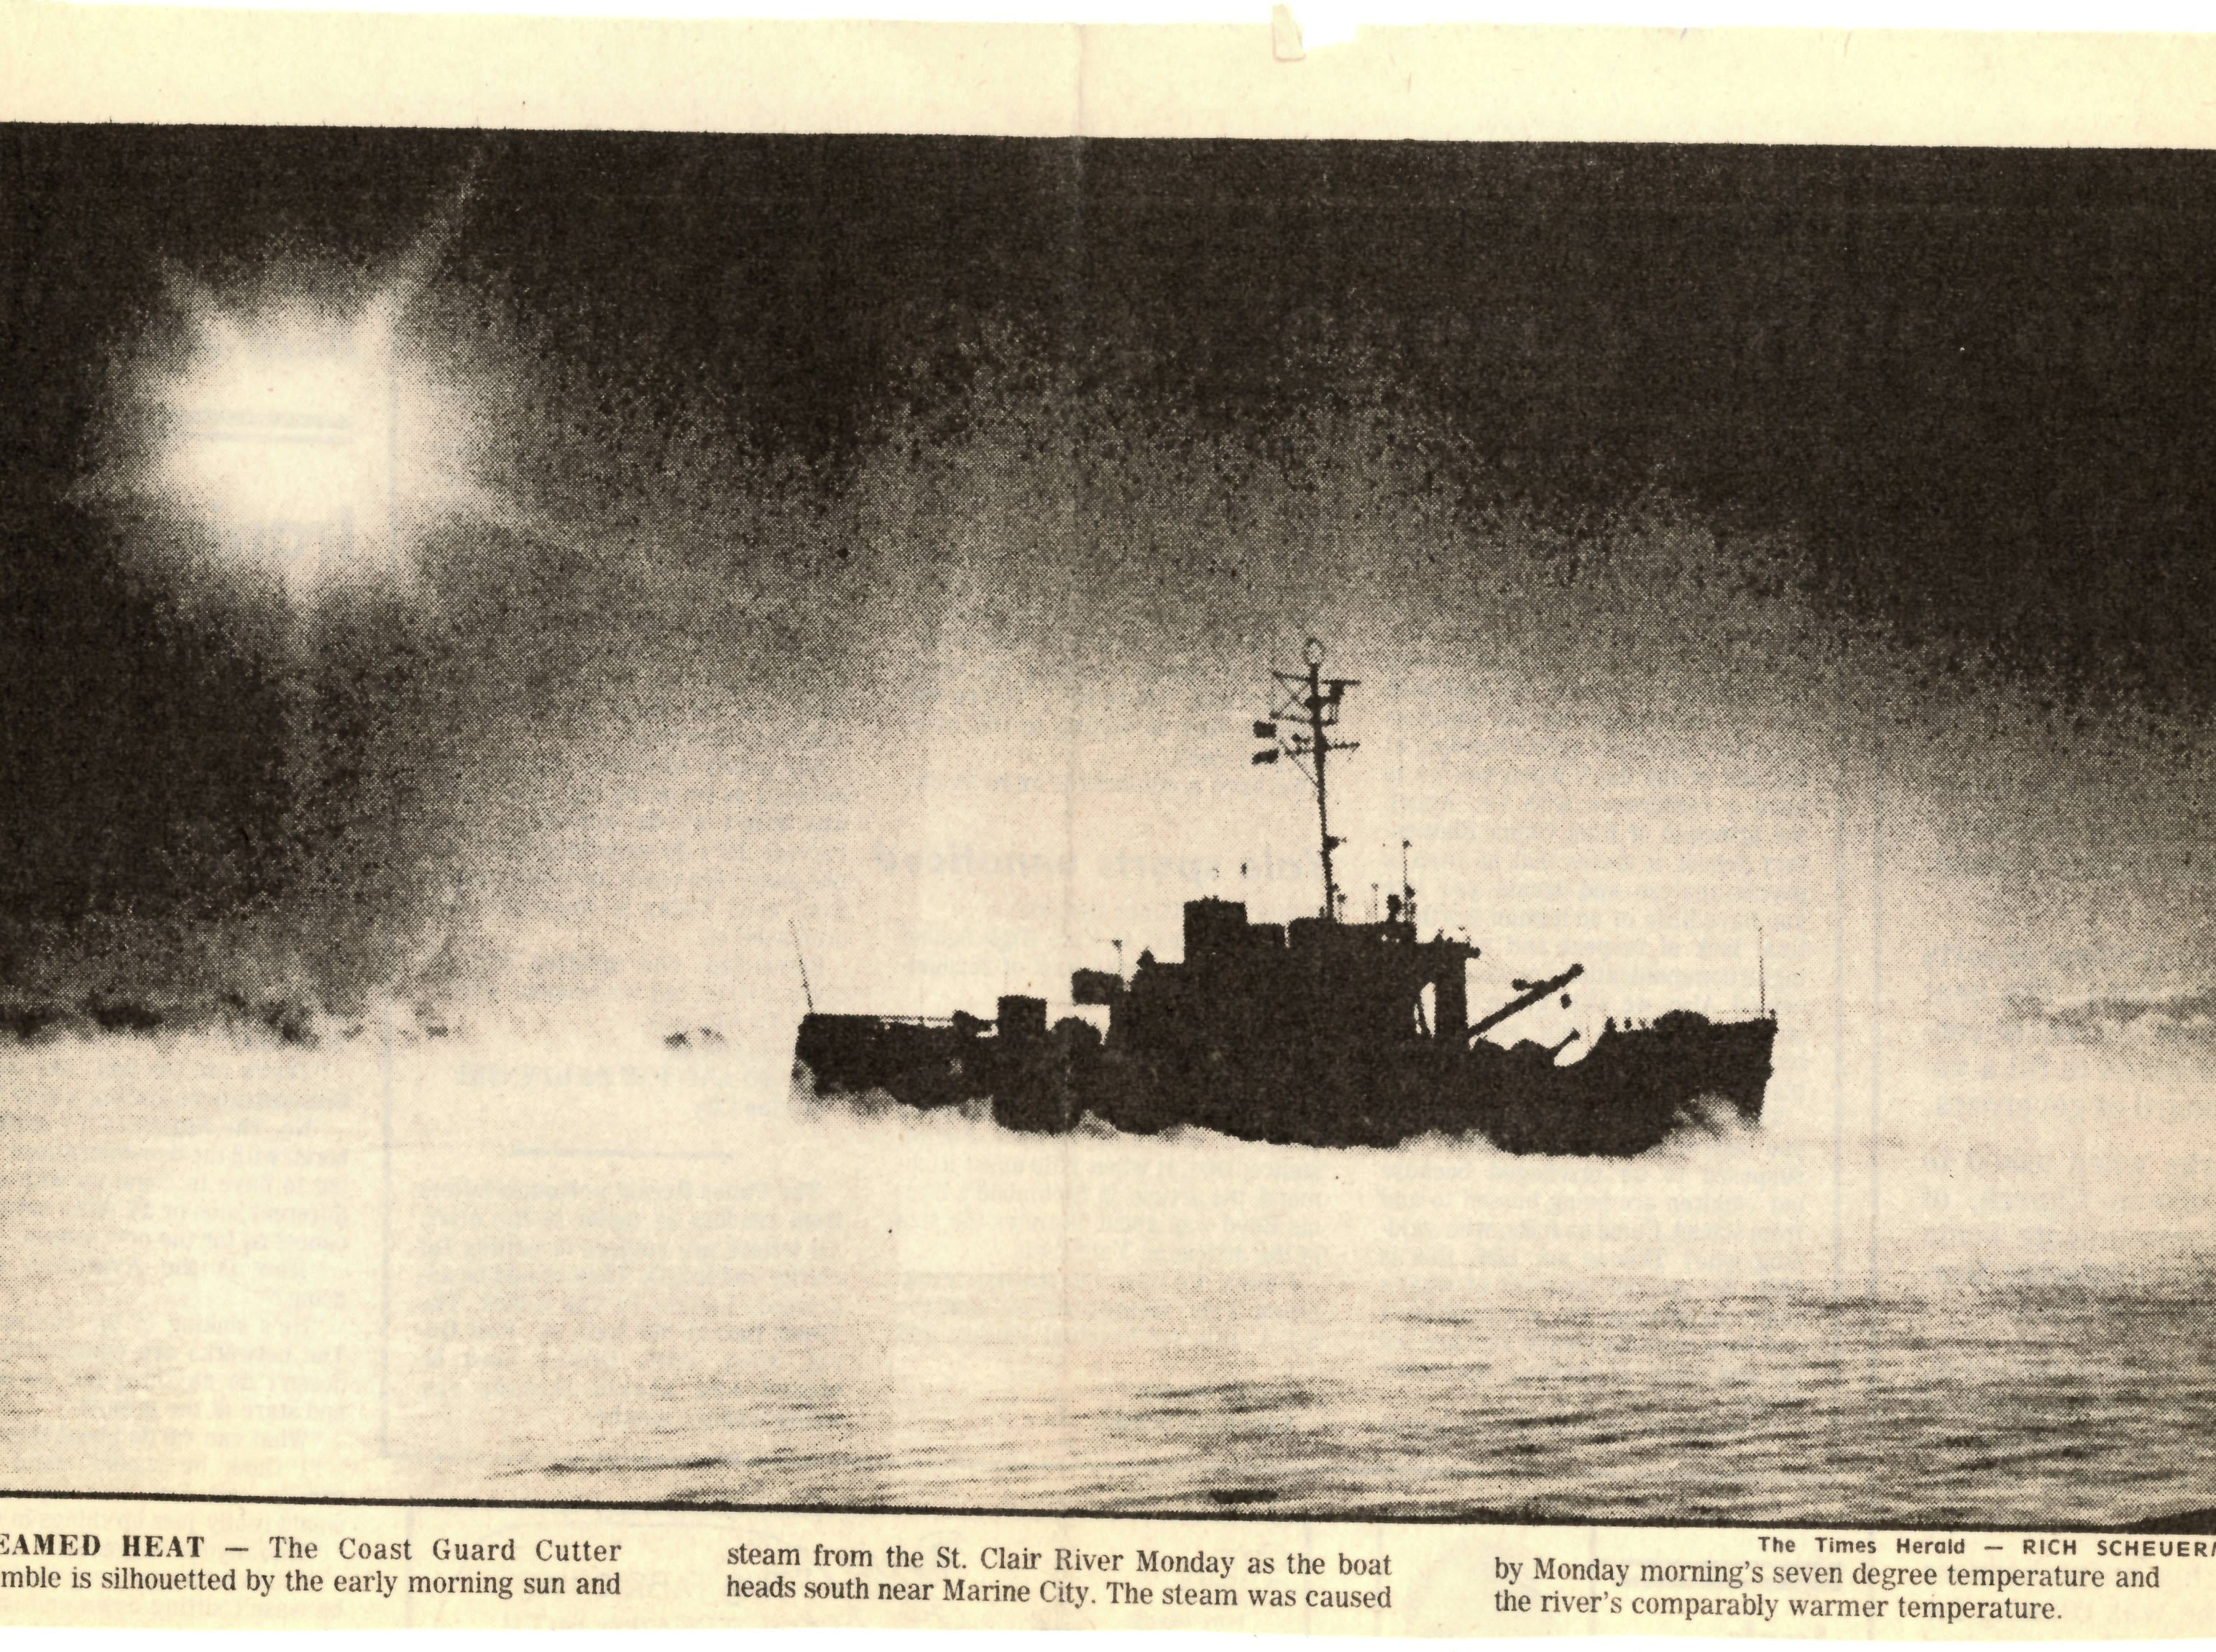 A newspaper clipping from December 1979 shows the USCGC Bramble on the St. Clair River, heading south near Marine City.